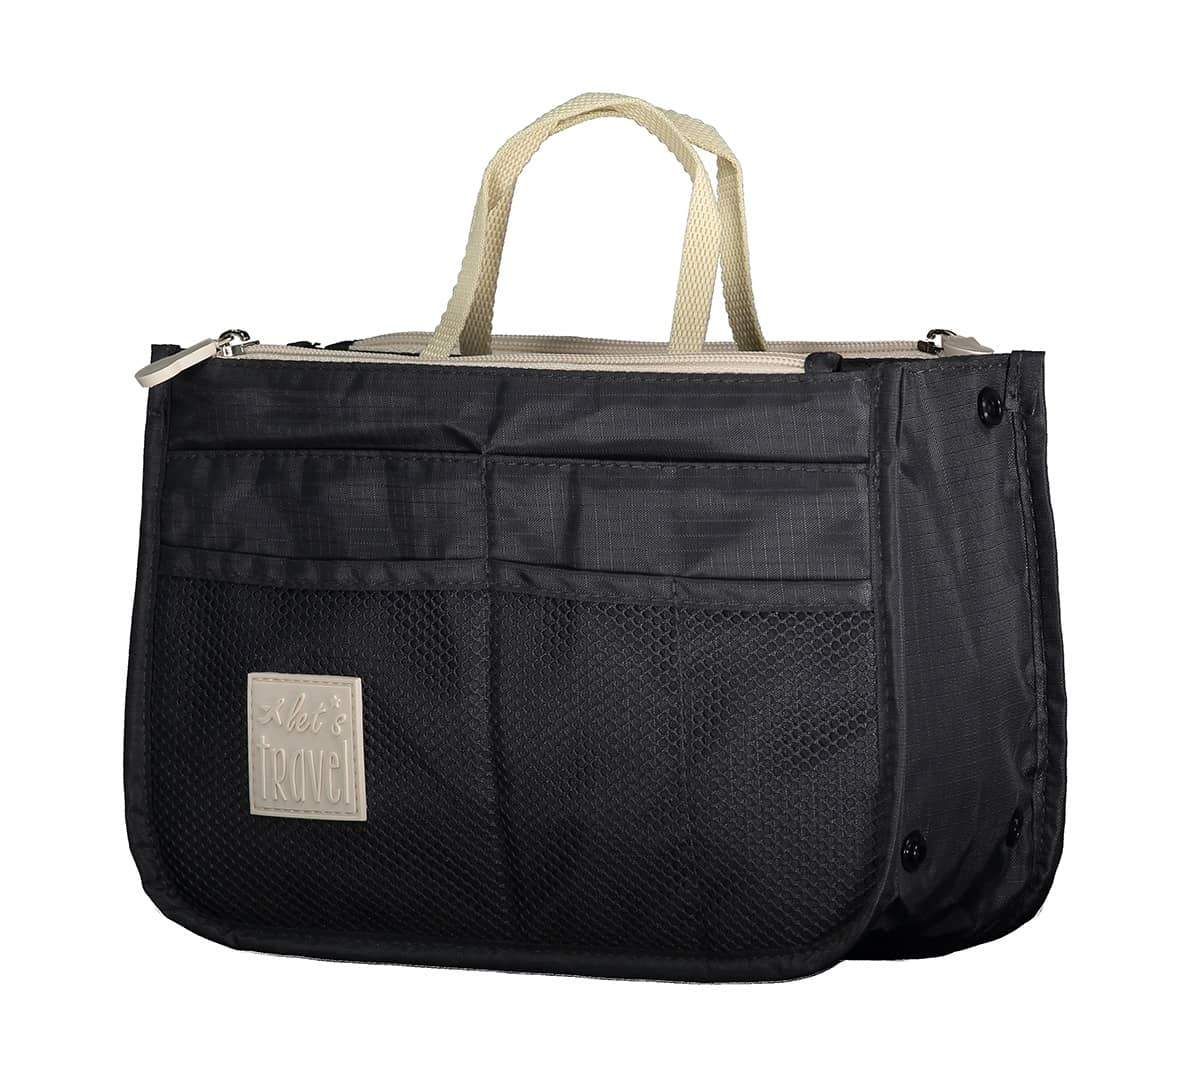 Multifunctional Travel Bag (26.5 x 9.5 x 18 cm, Grey)